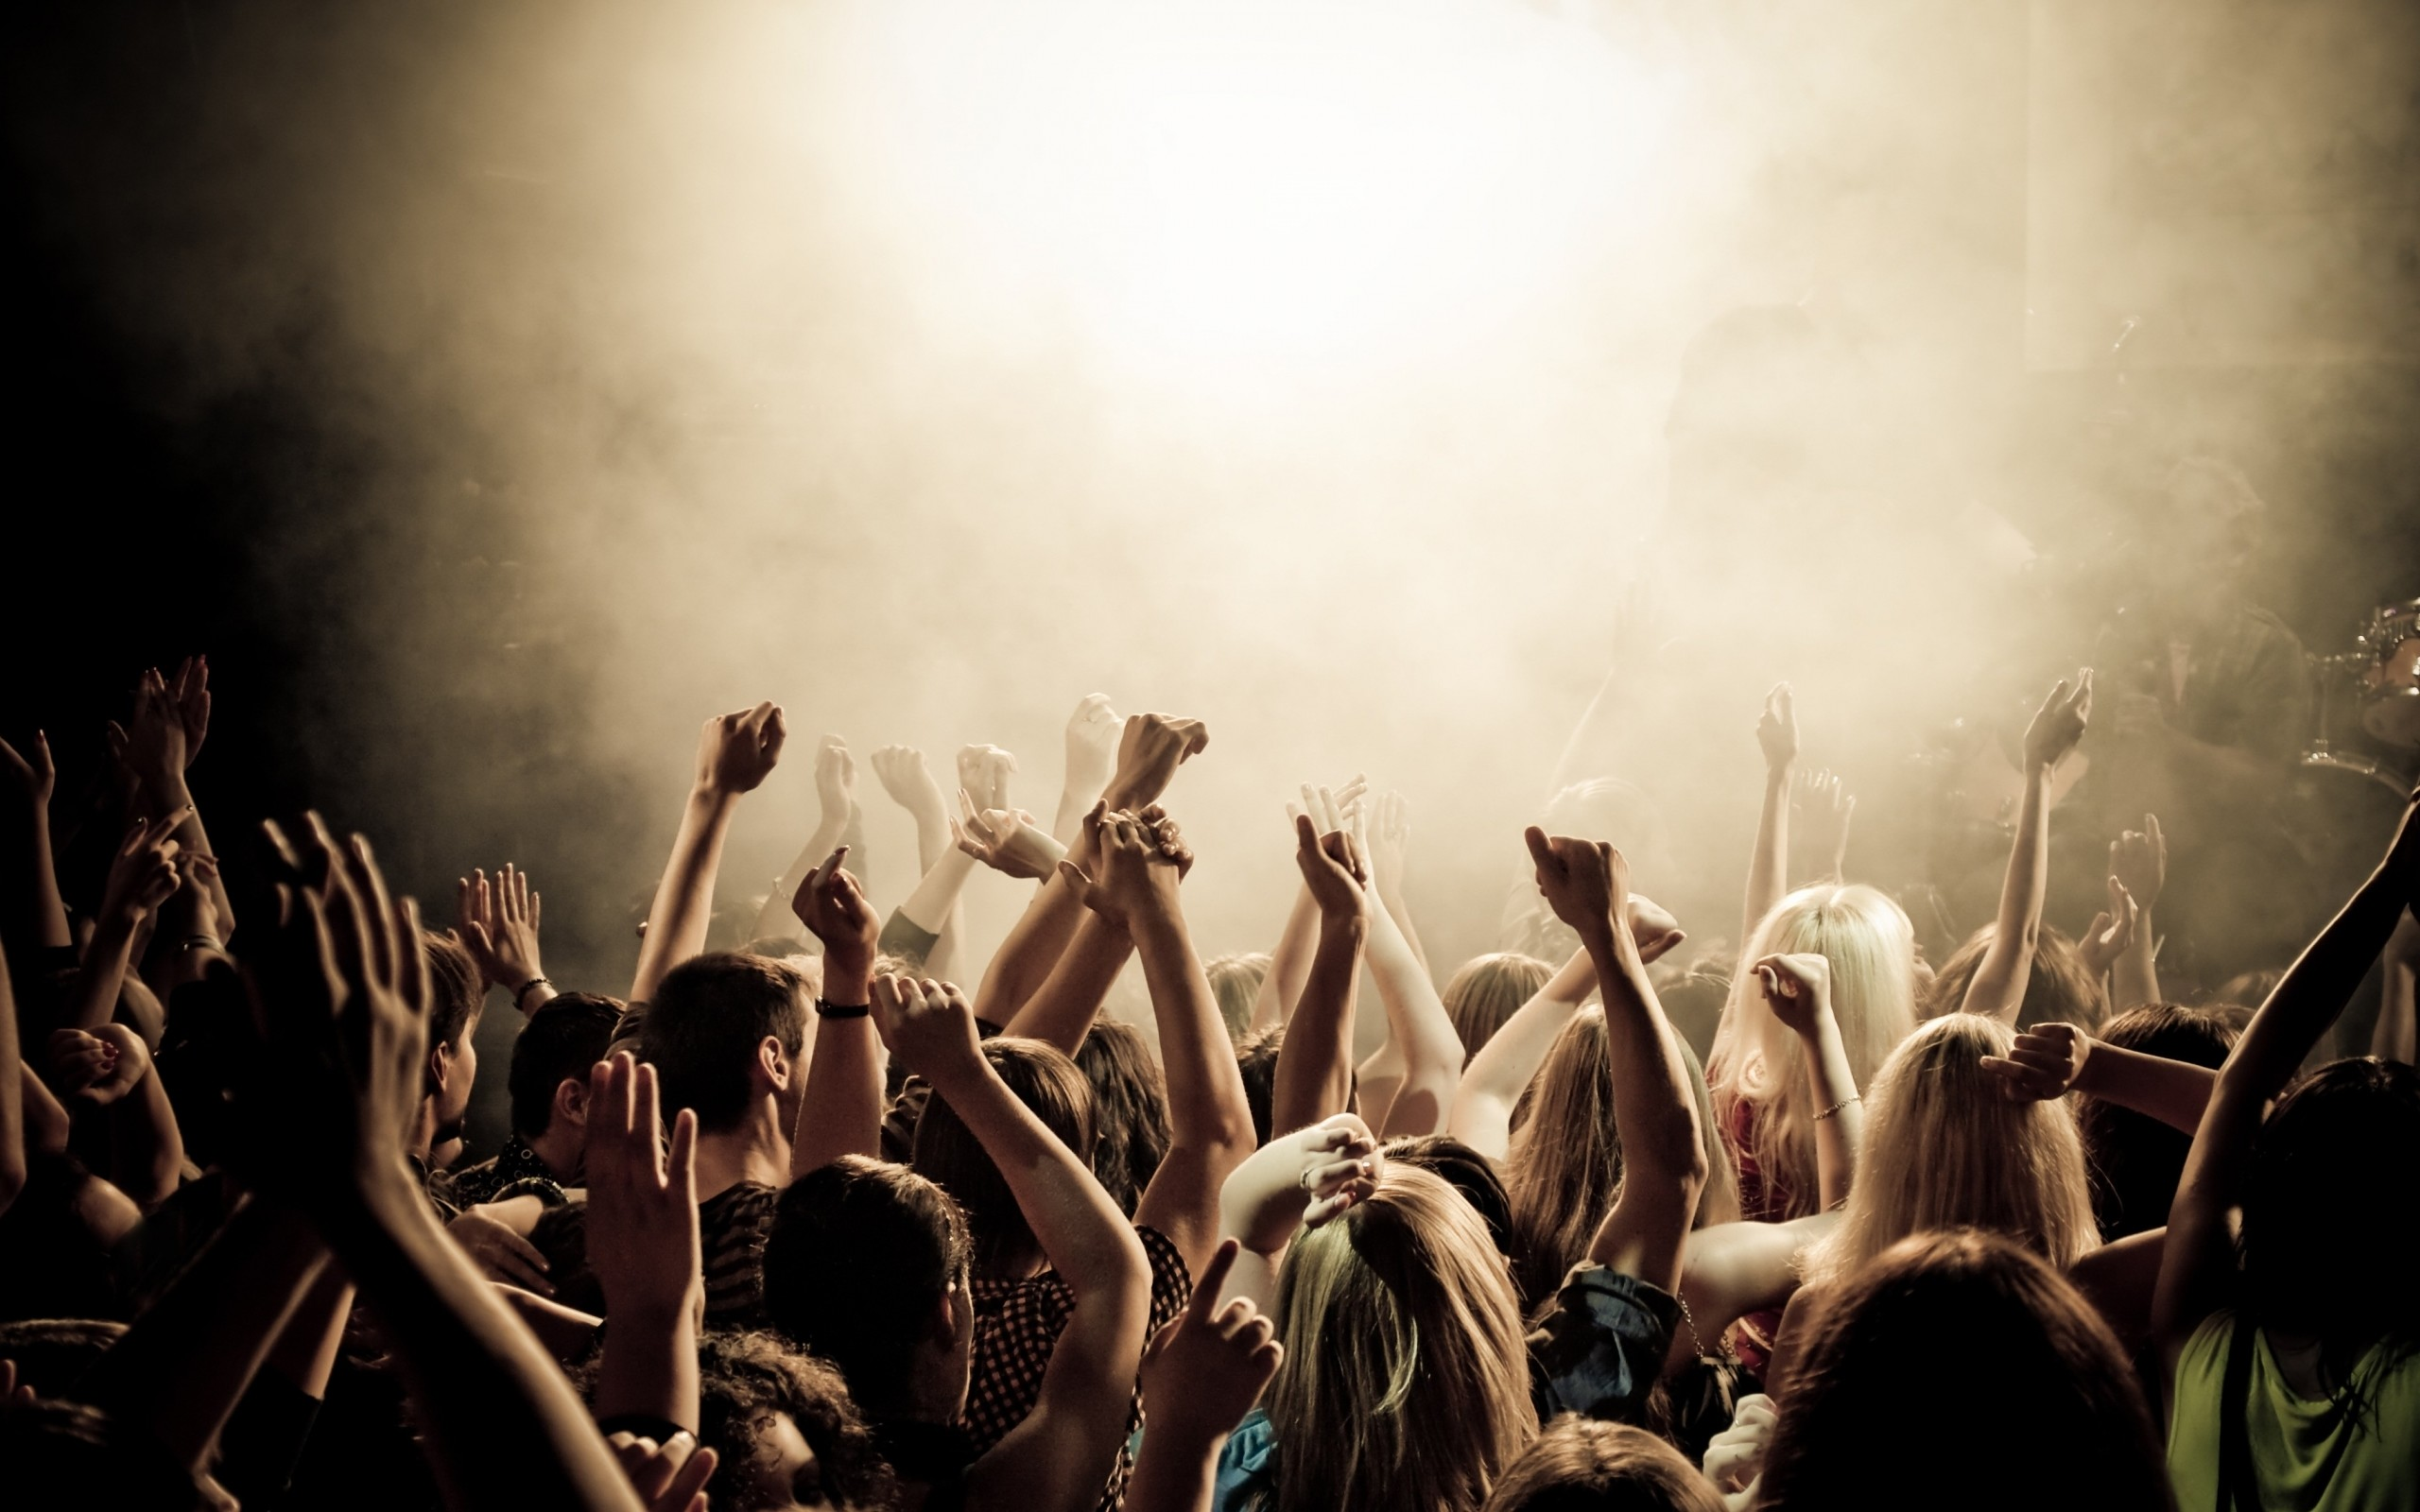 smoke hands people crowd concert arms raised 3648×2736 wallpaper Art HD  Wallpaper